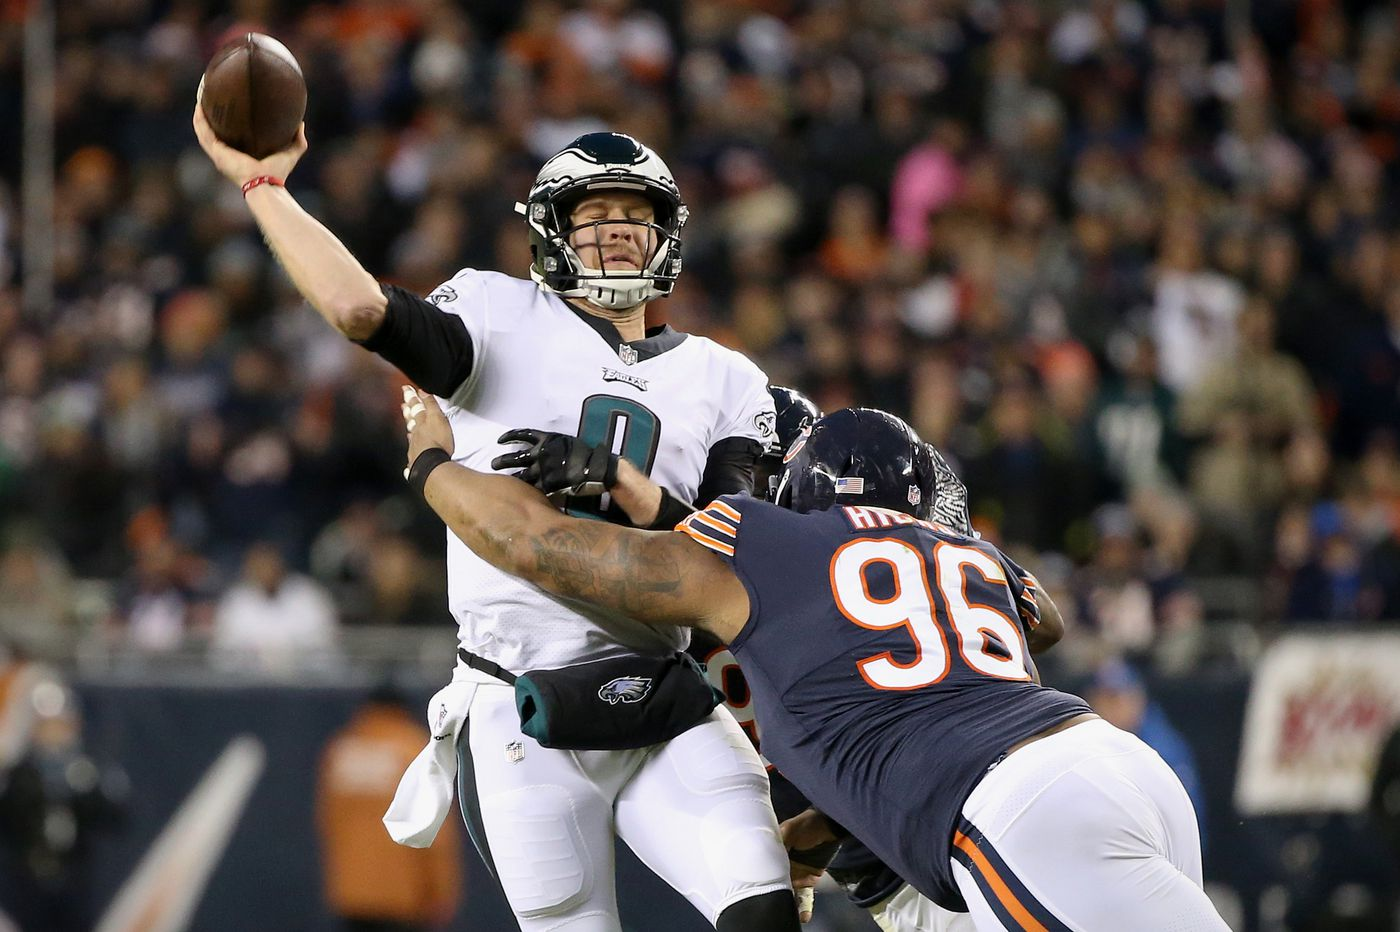 Eagles' win over Bears shows Super Bowl champions' toughness | Mike Sielski